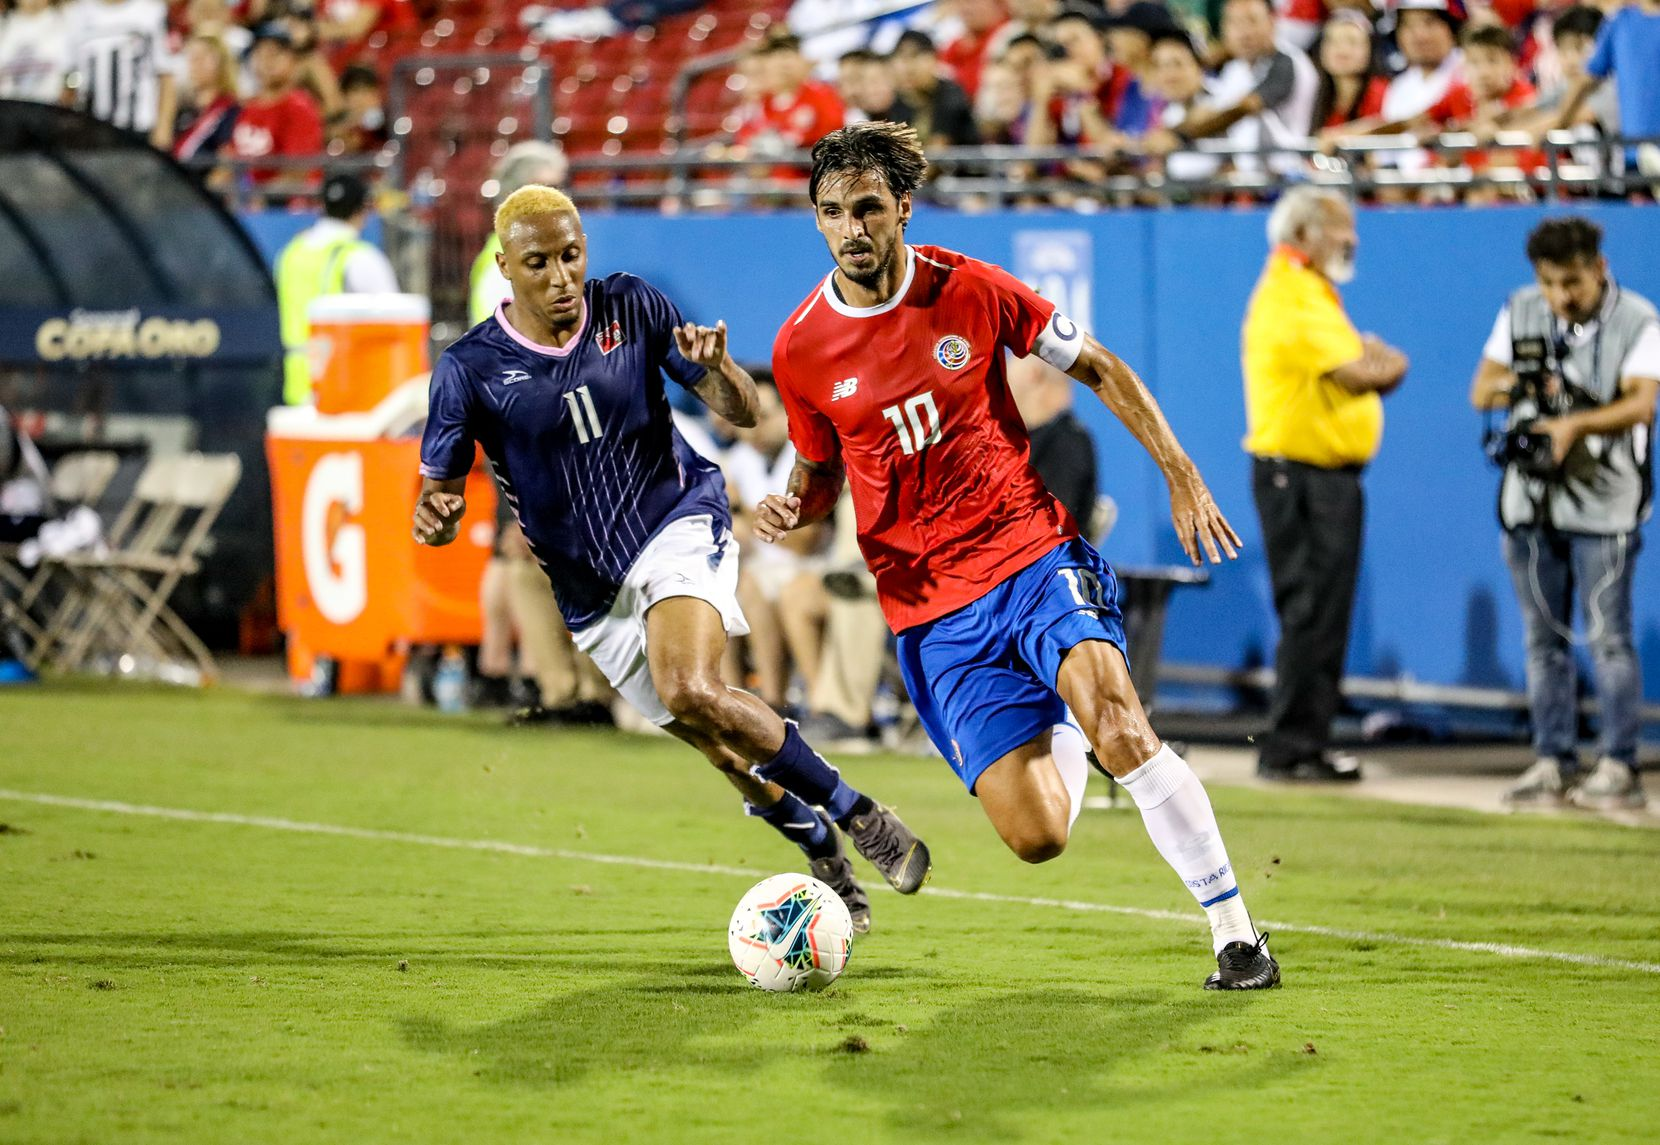 Bryan Ruiz of Costa Rica is chased by Bermuda's Willie Clemons during the 2019 Gold Cup at Toyota Stadium. (6-20-19)